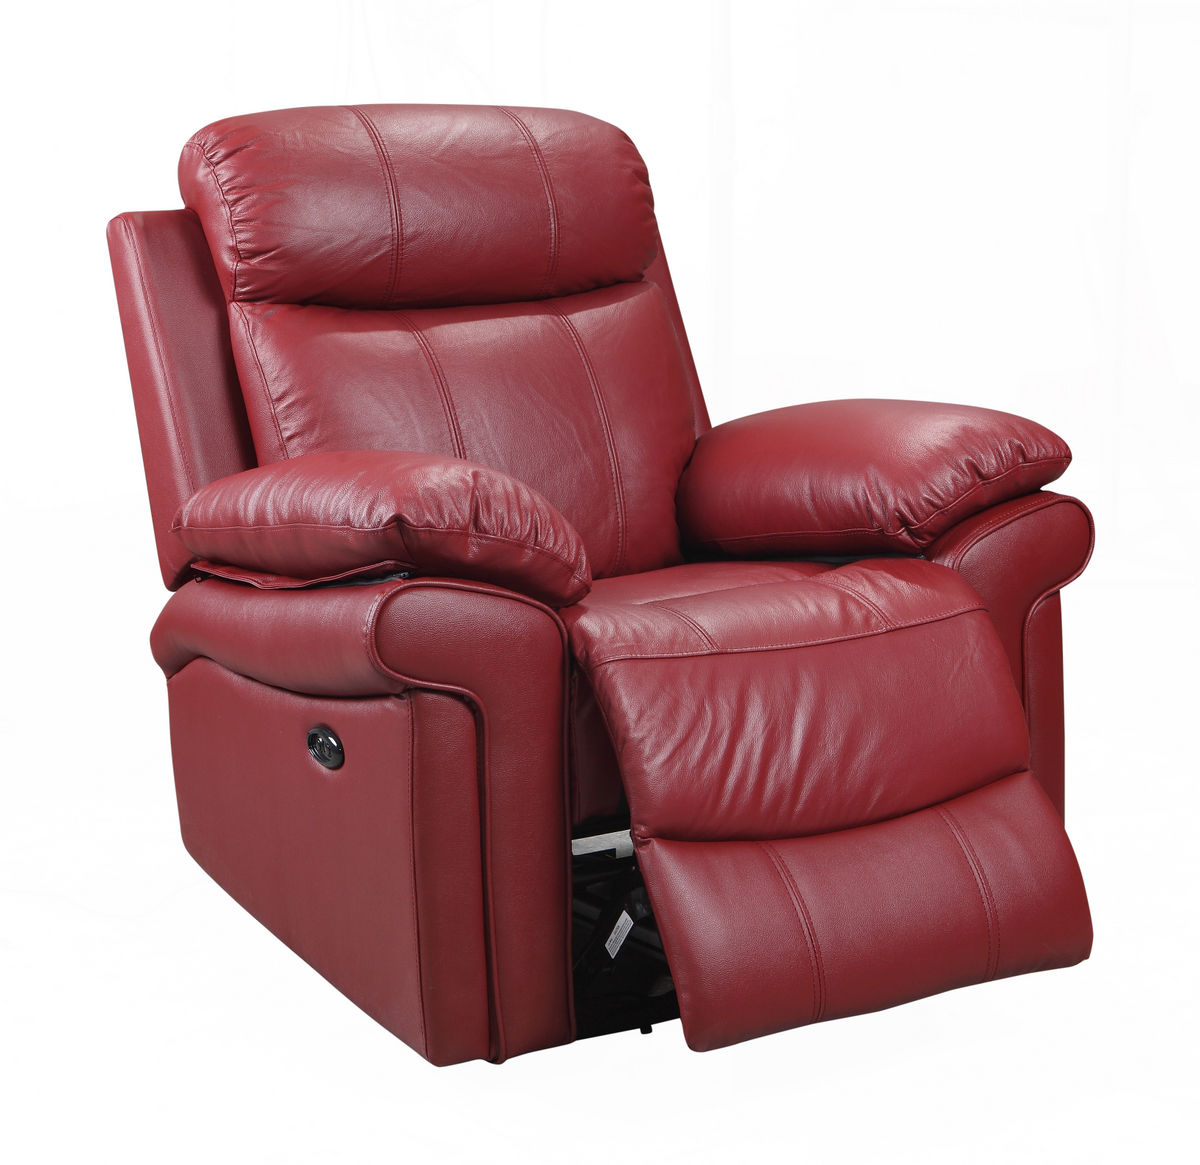 Magnificent Joplin Power Leather Reclining Sofa In Red Sofas And Ncnpc Chair Design For Home Ncnpcorg